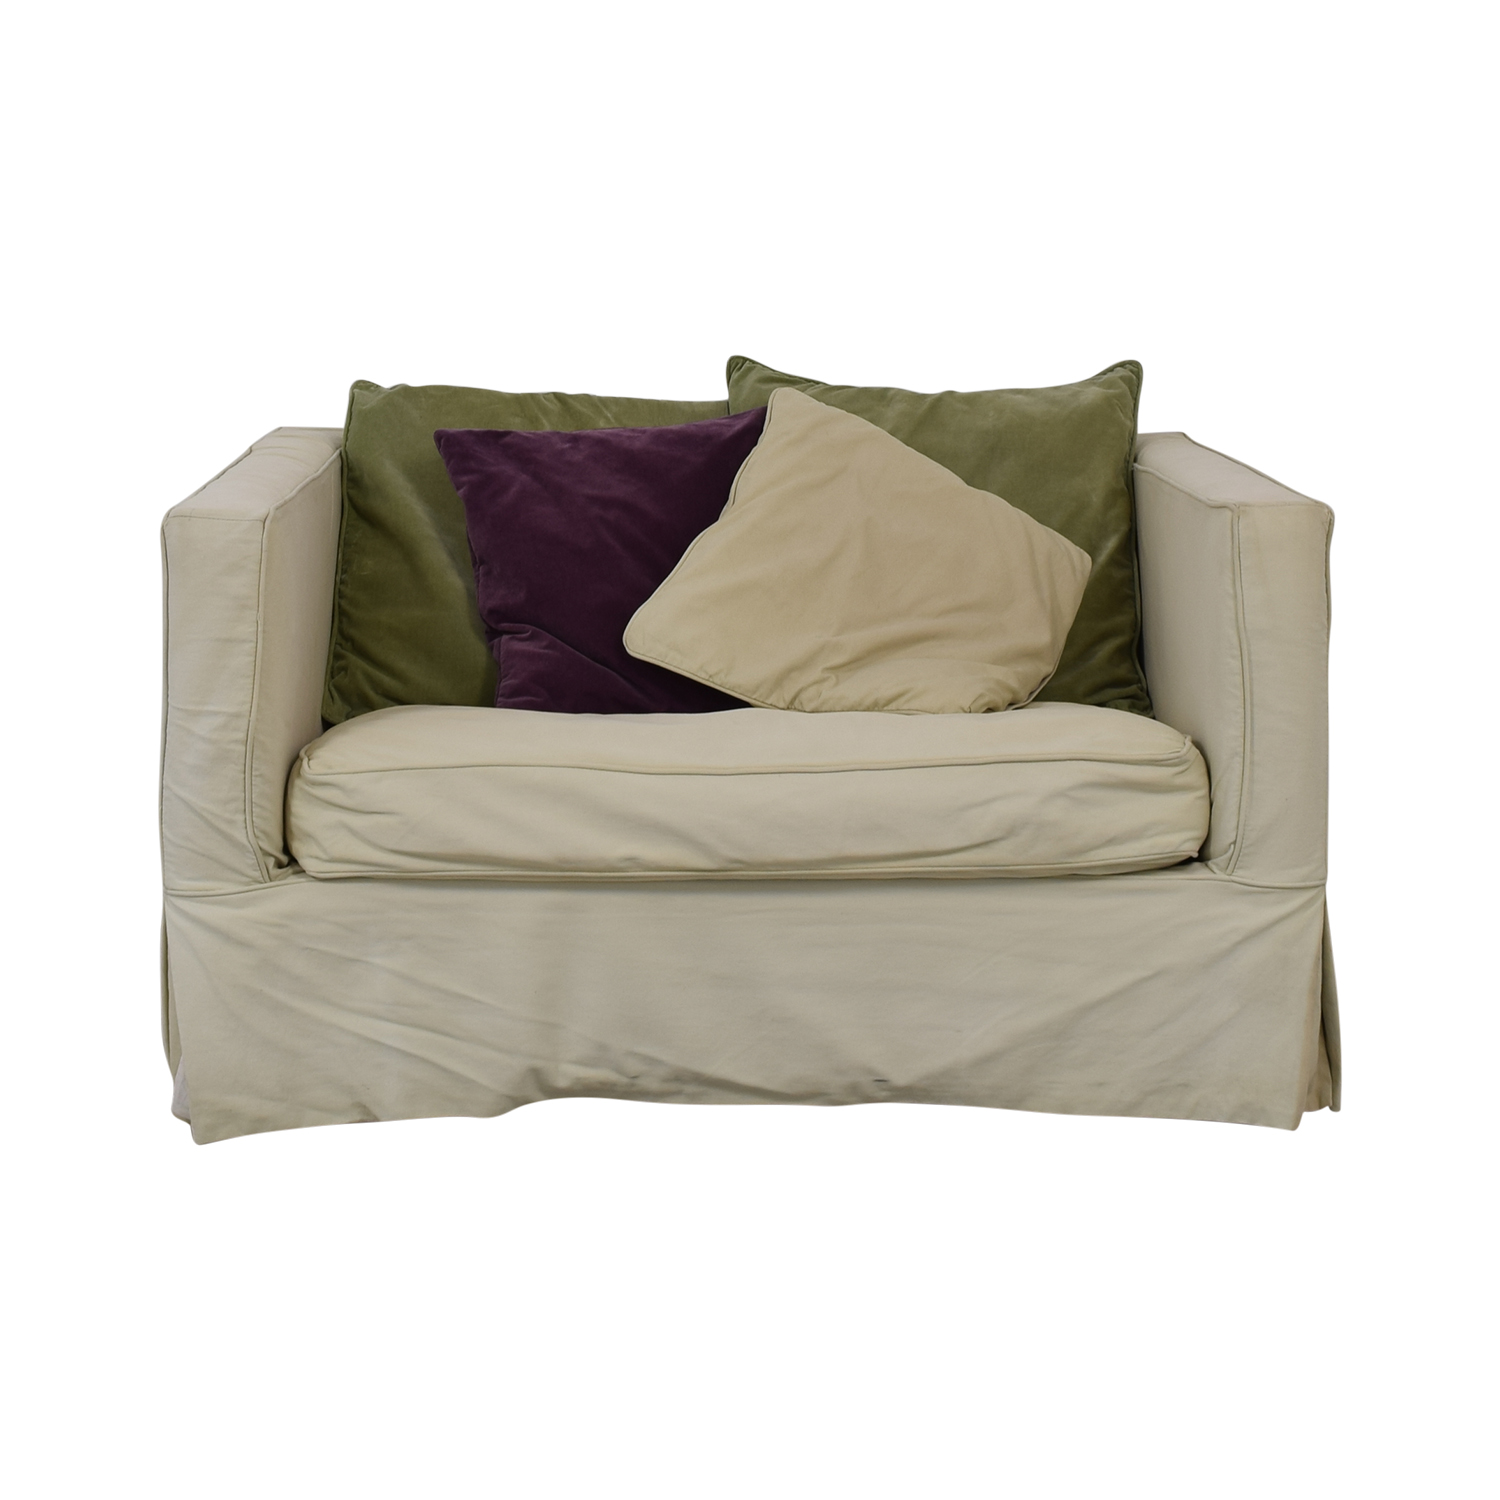 Crate & Barrel Crate & Barrel Beige Single Cushion Loveseat with Twin Pull Out Bed second hand